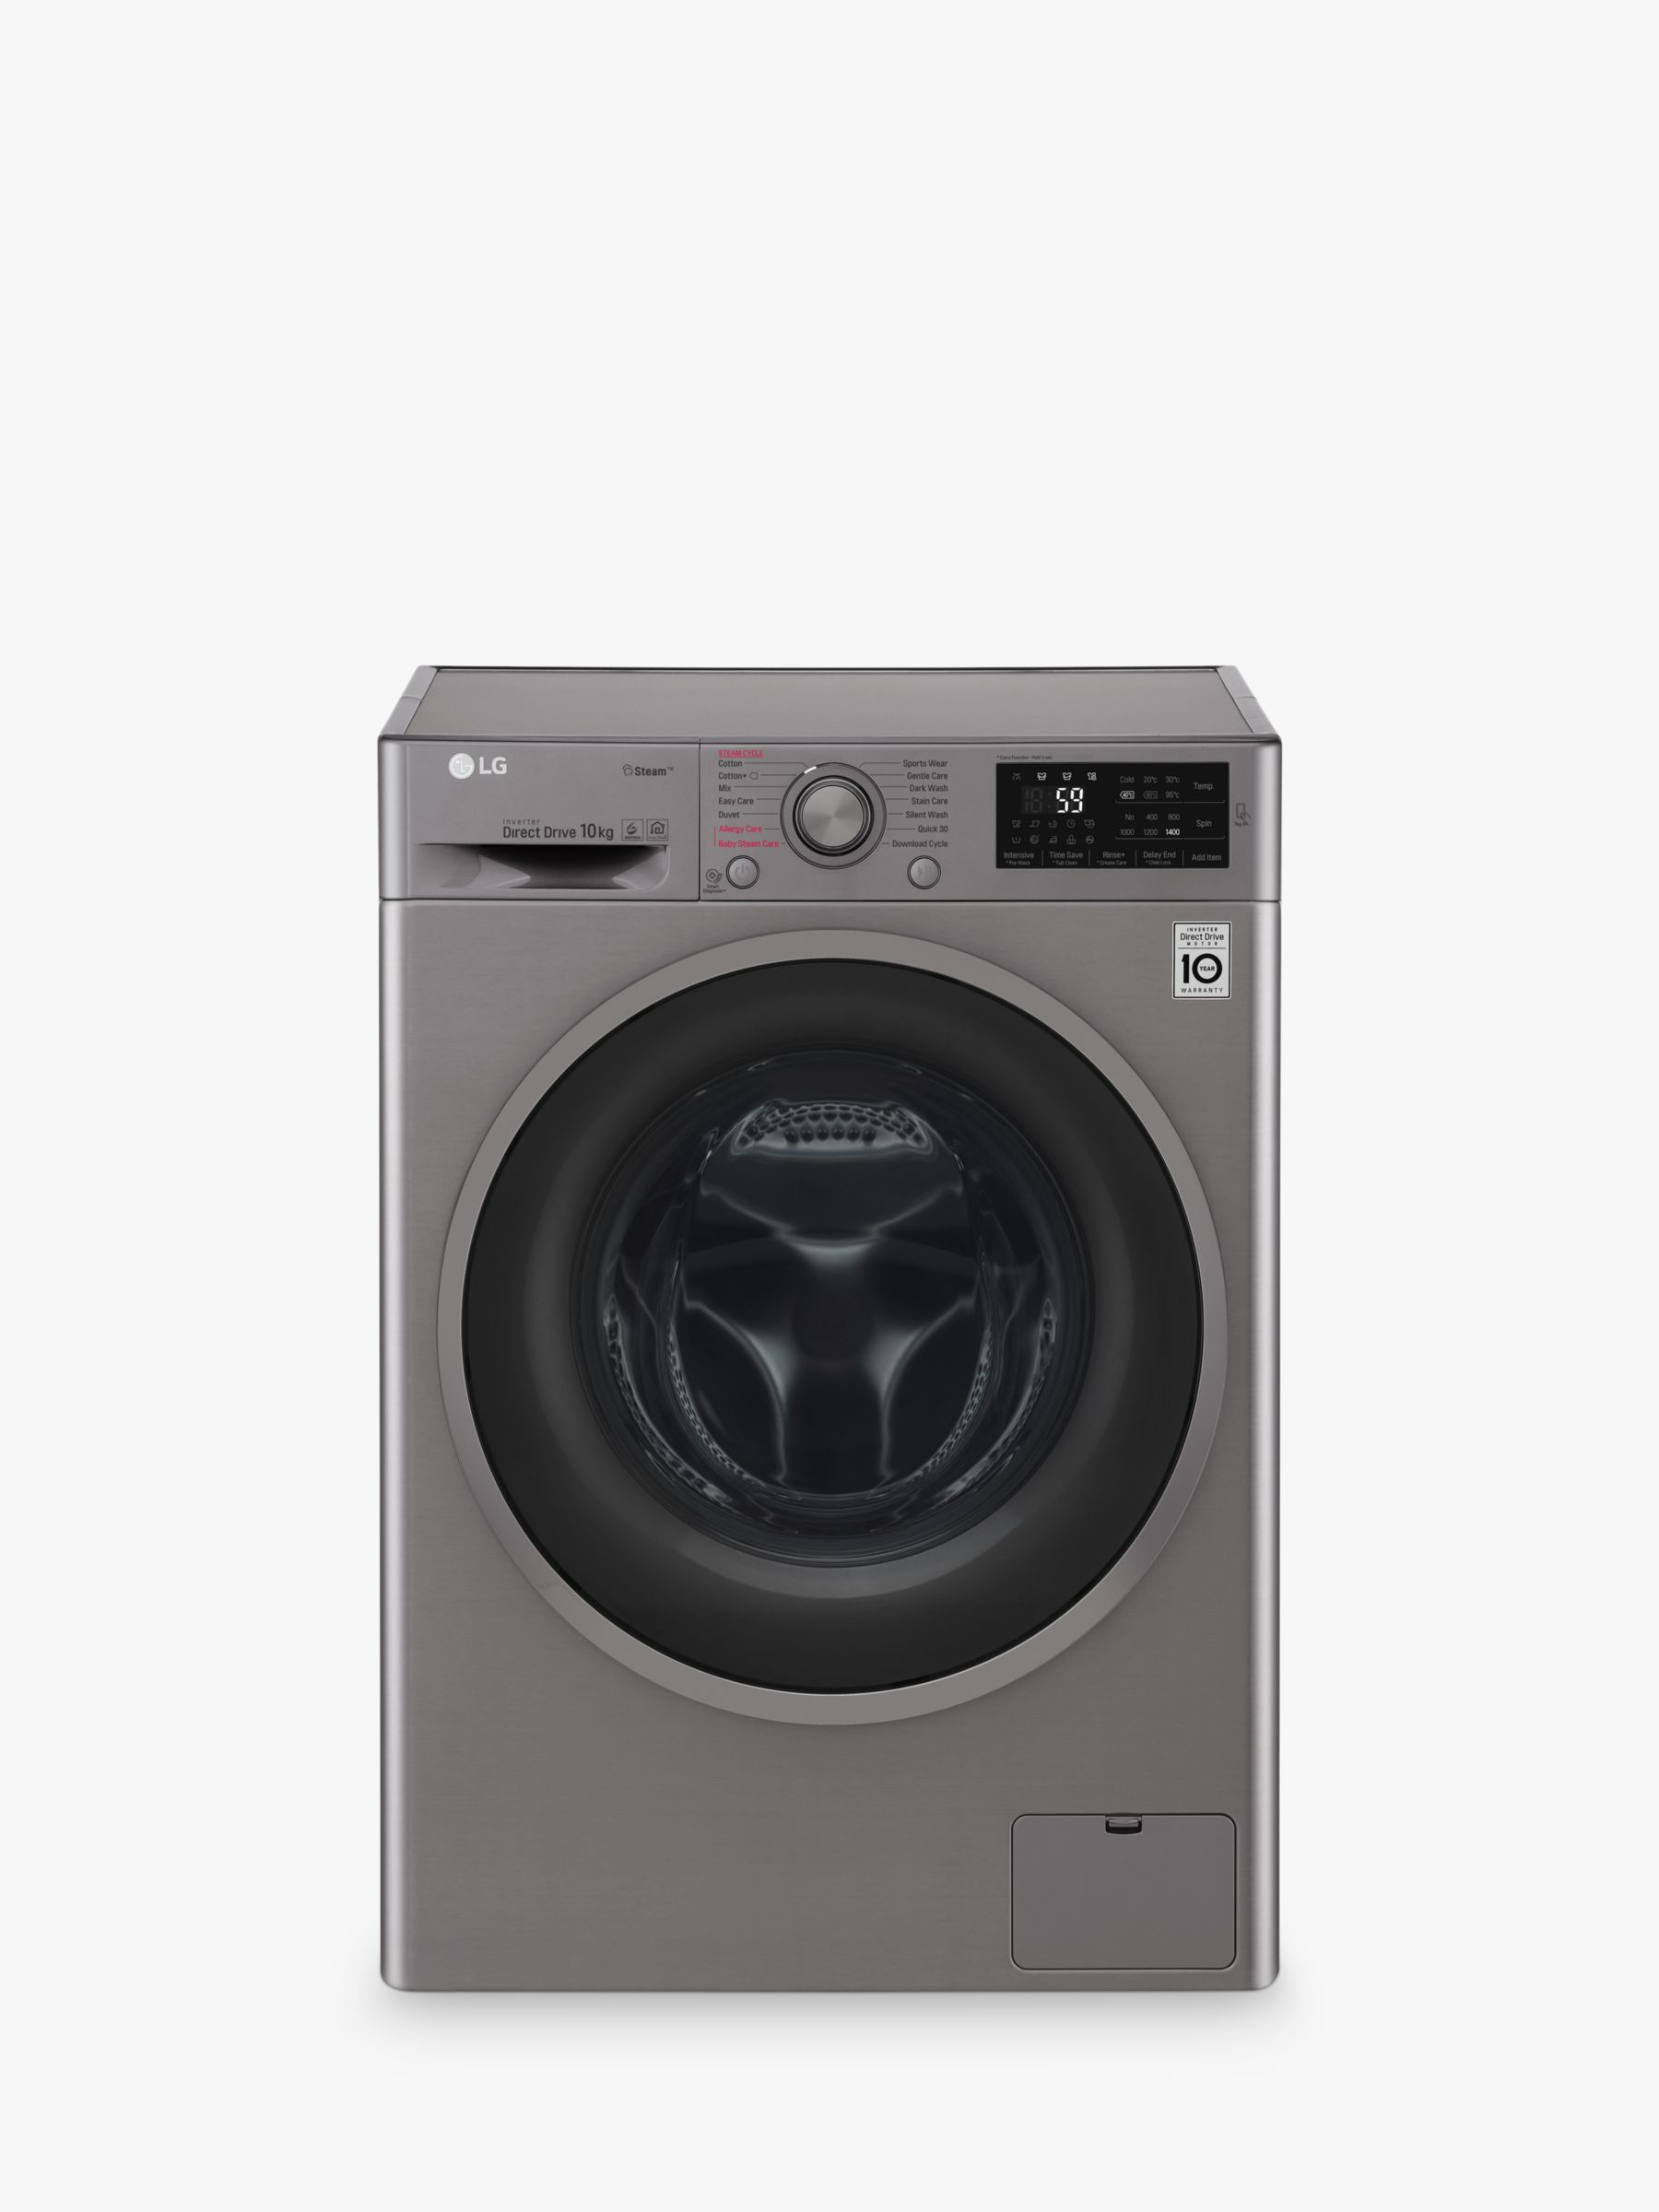 LG LG F4J610SS Freestanding Washing Machine, 10kg Load, A+++ Energy Rating, 1400rpm Spin, Graphite